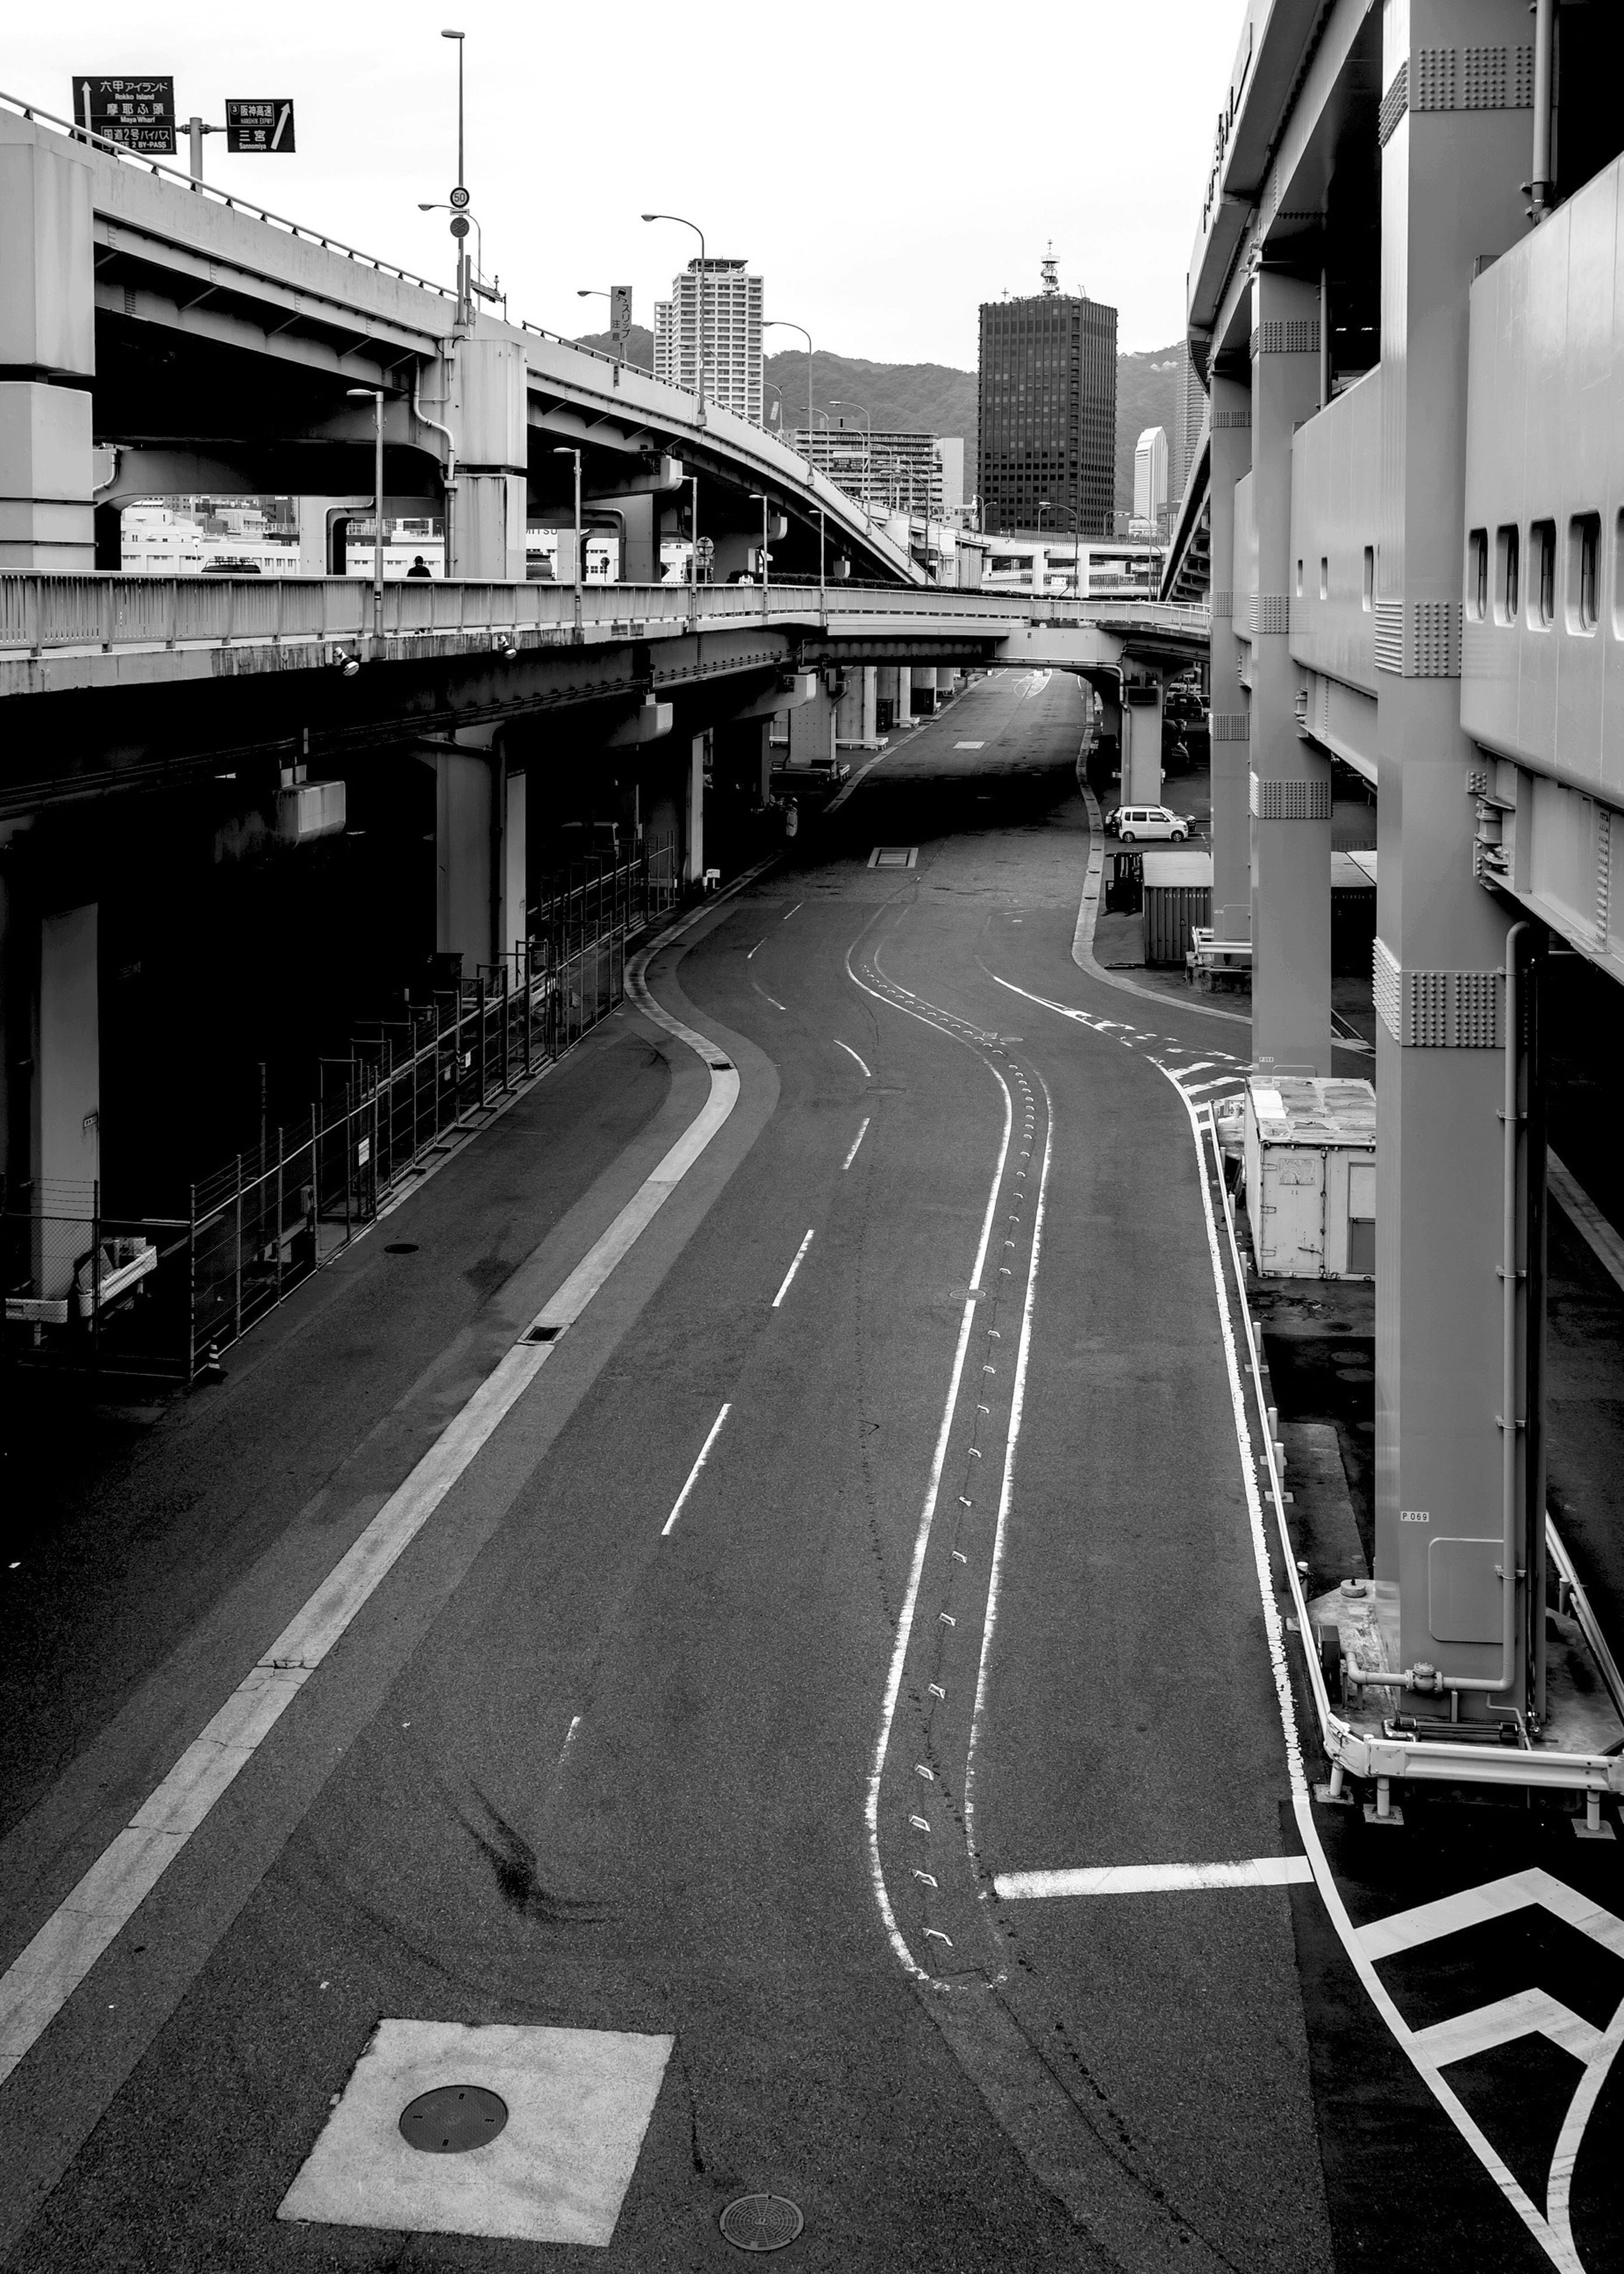 city, transportation, building exterior, architecture, built structure, outdoors, day, text, no people, bridge - man made structure, connection, sky, urban road